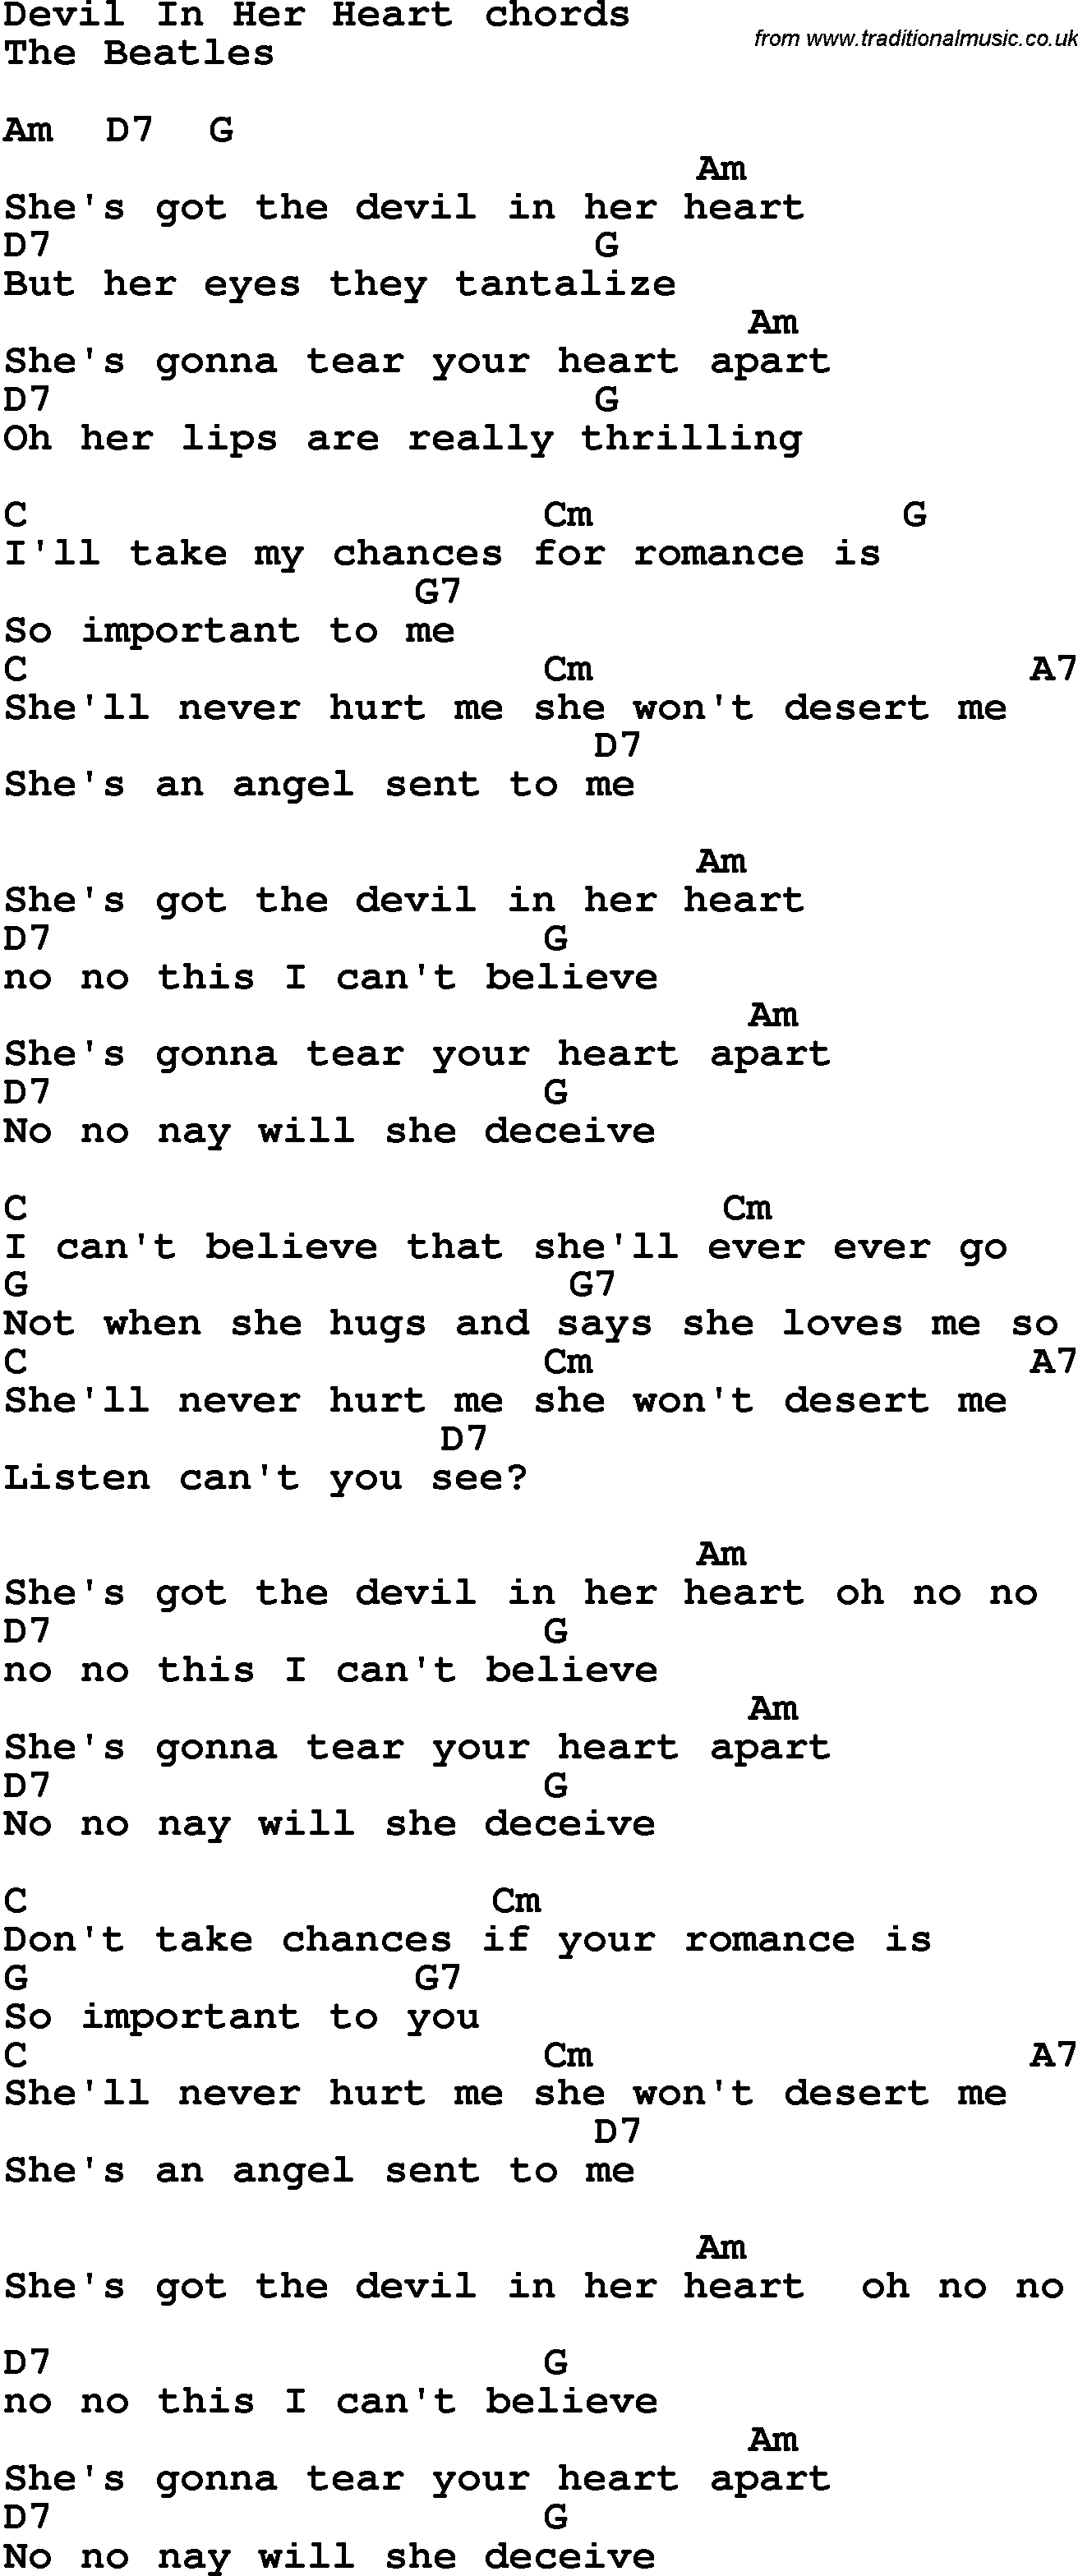 Song Lyrics With Guitar Chords For Devil In Her Heart The Beatles